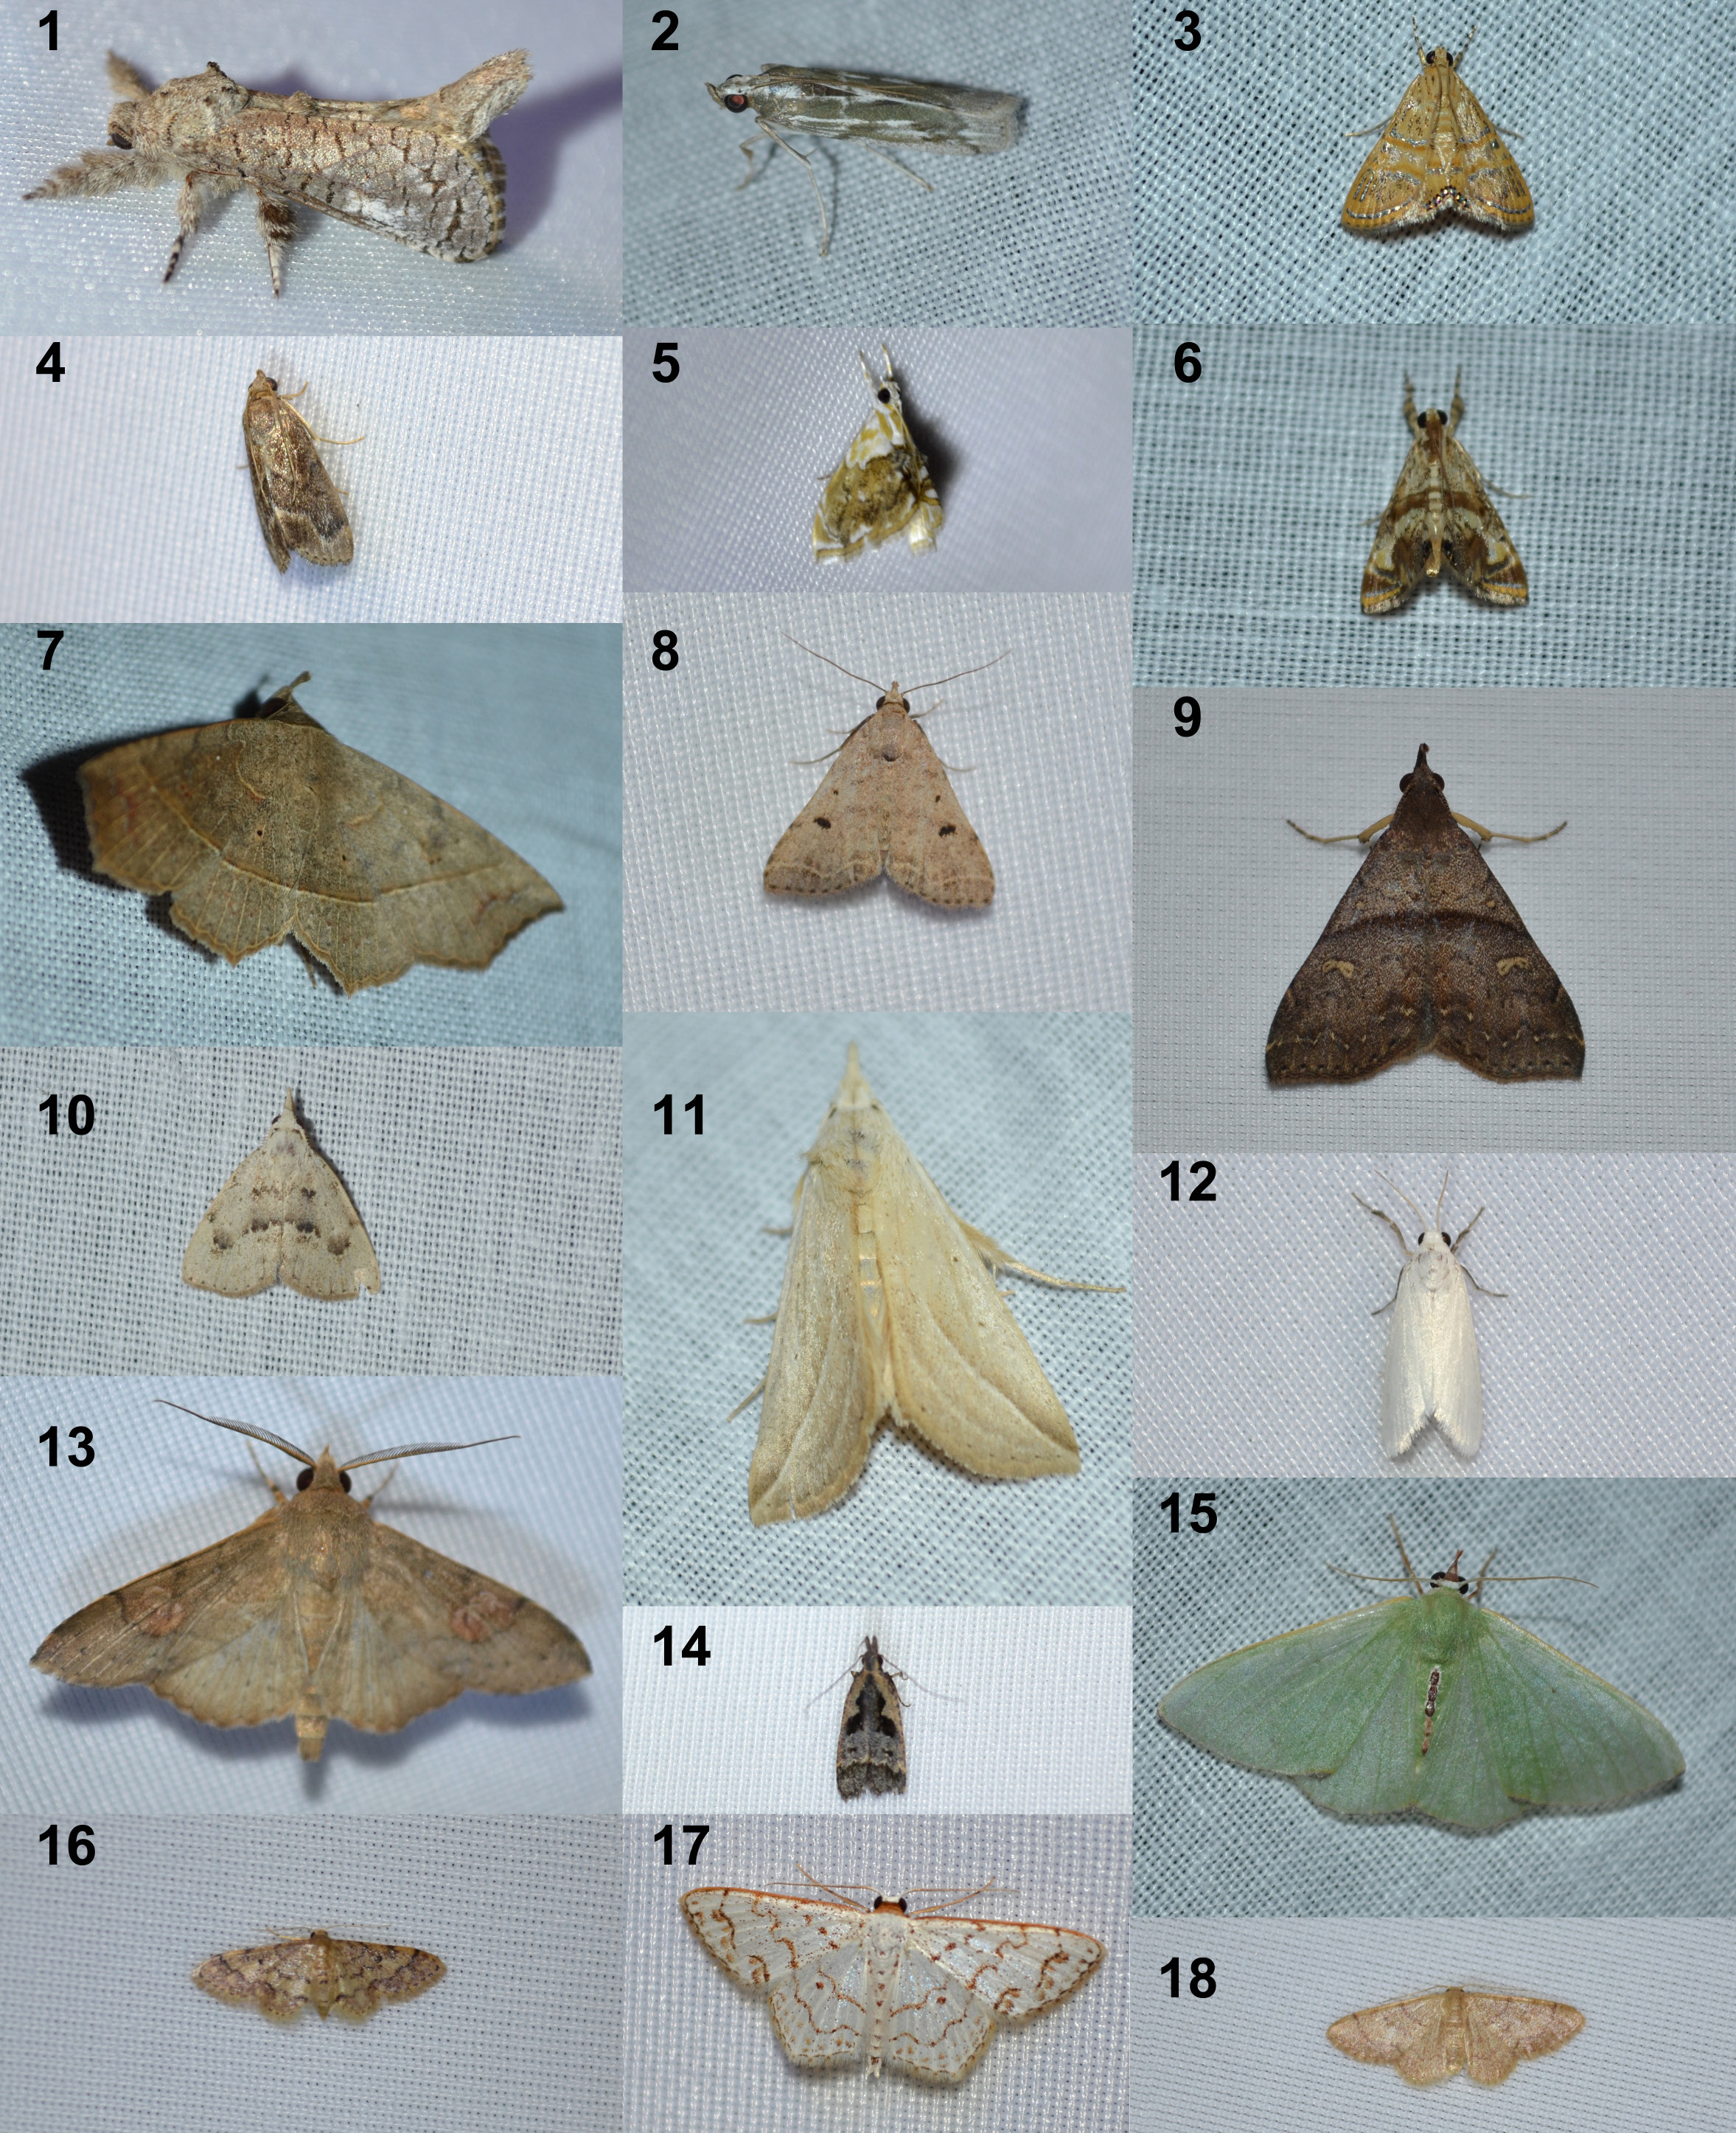 Plate 1 Moths of Huevos Part 1. See text for species names.